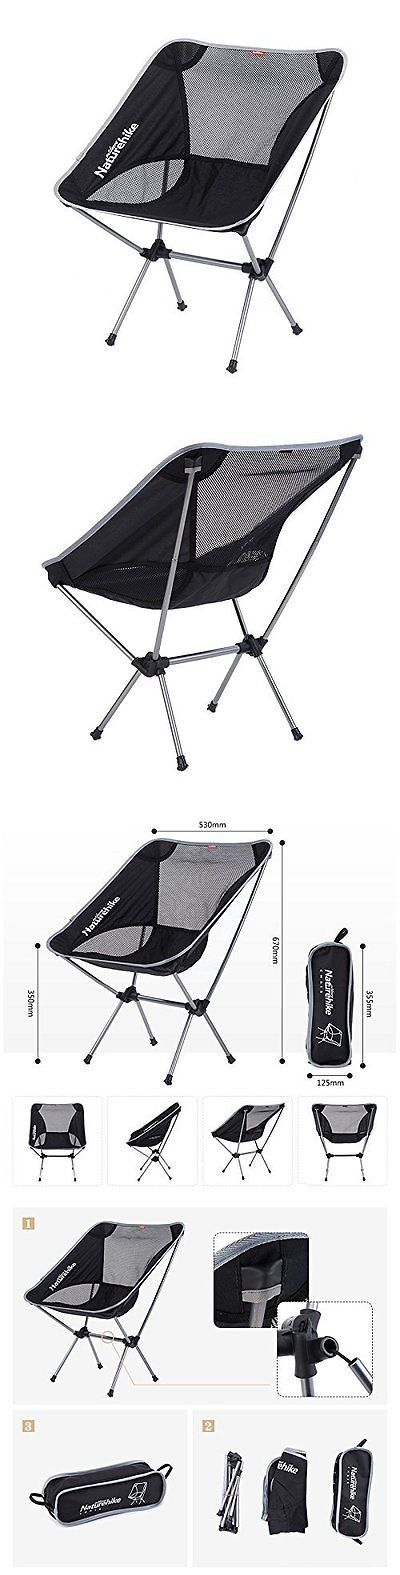 Chairs and Seats 19985: Portable Camping Aluminium Alloy Stool Outdoor Foldable Fishing Camping Chair -> BUY IT NOW ONLY: $36.99 on eBay!